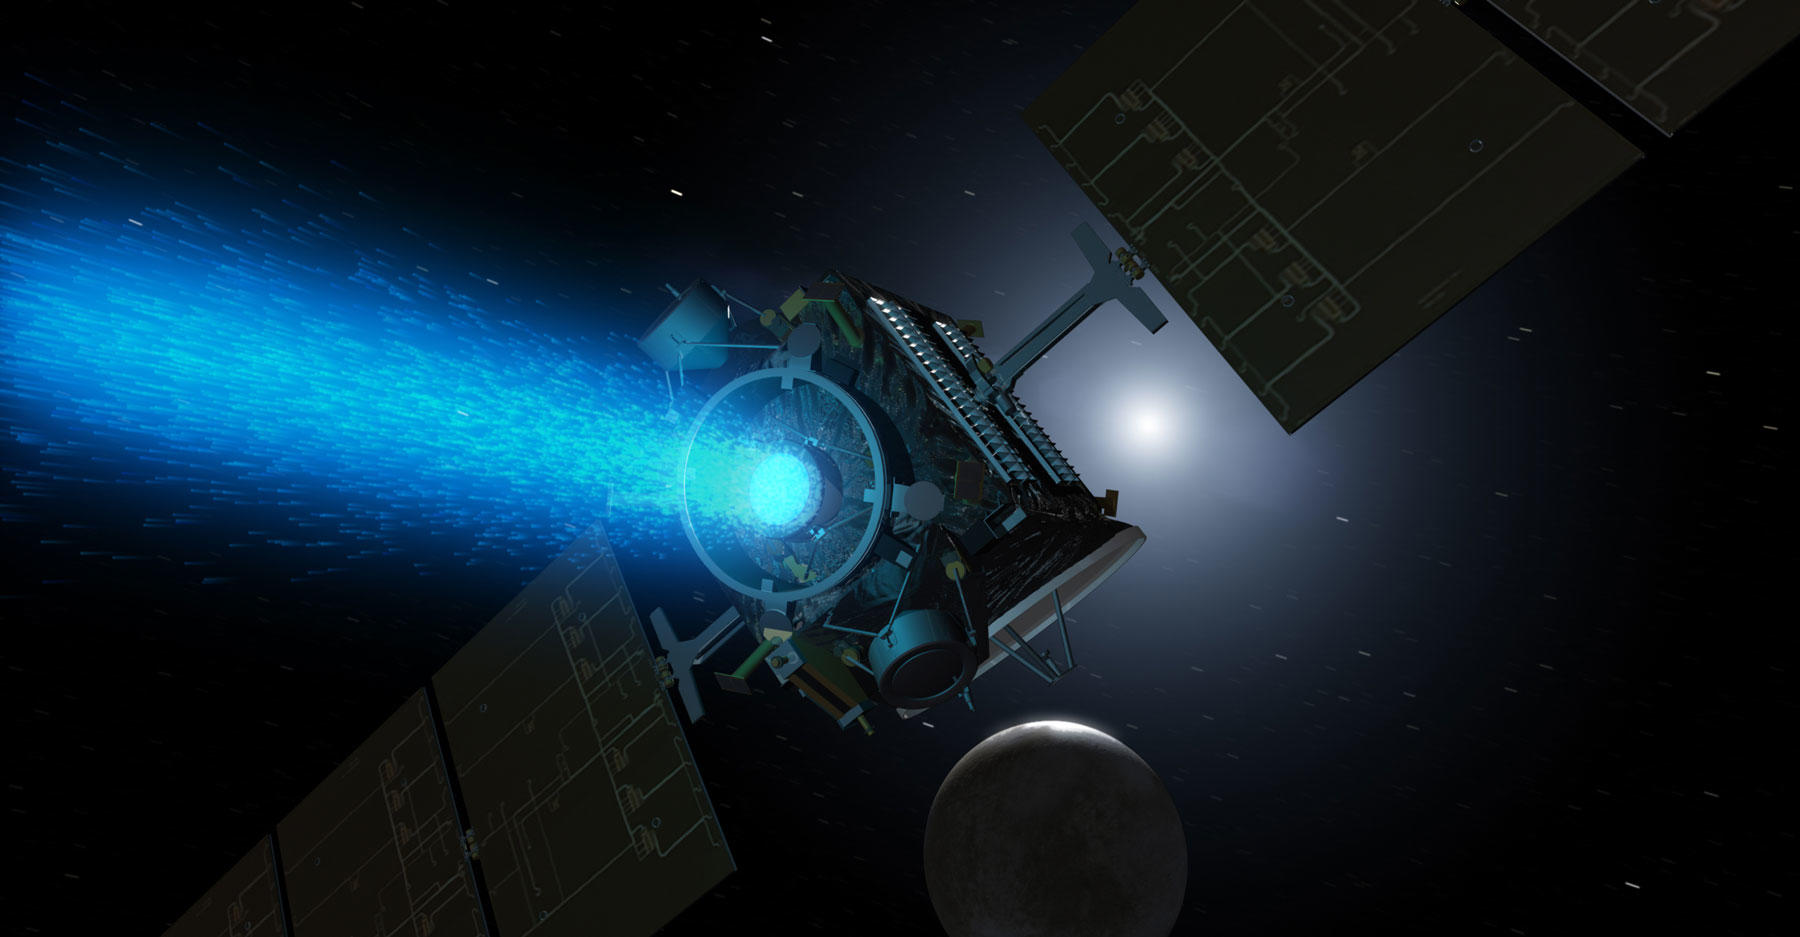 Dawn spacecraft approaching Ceres